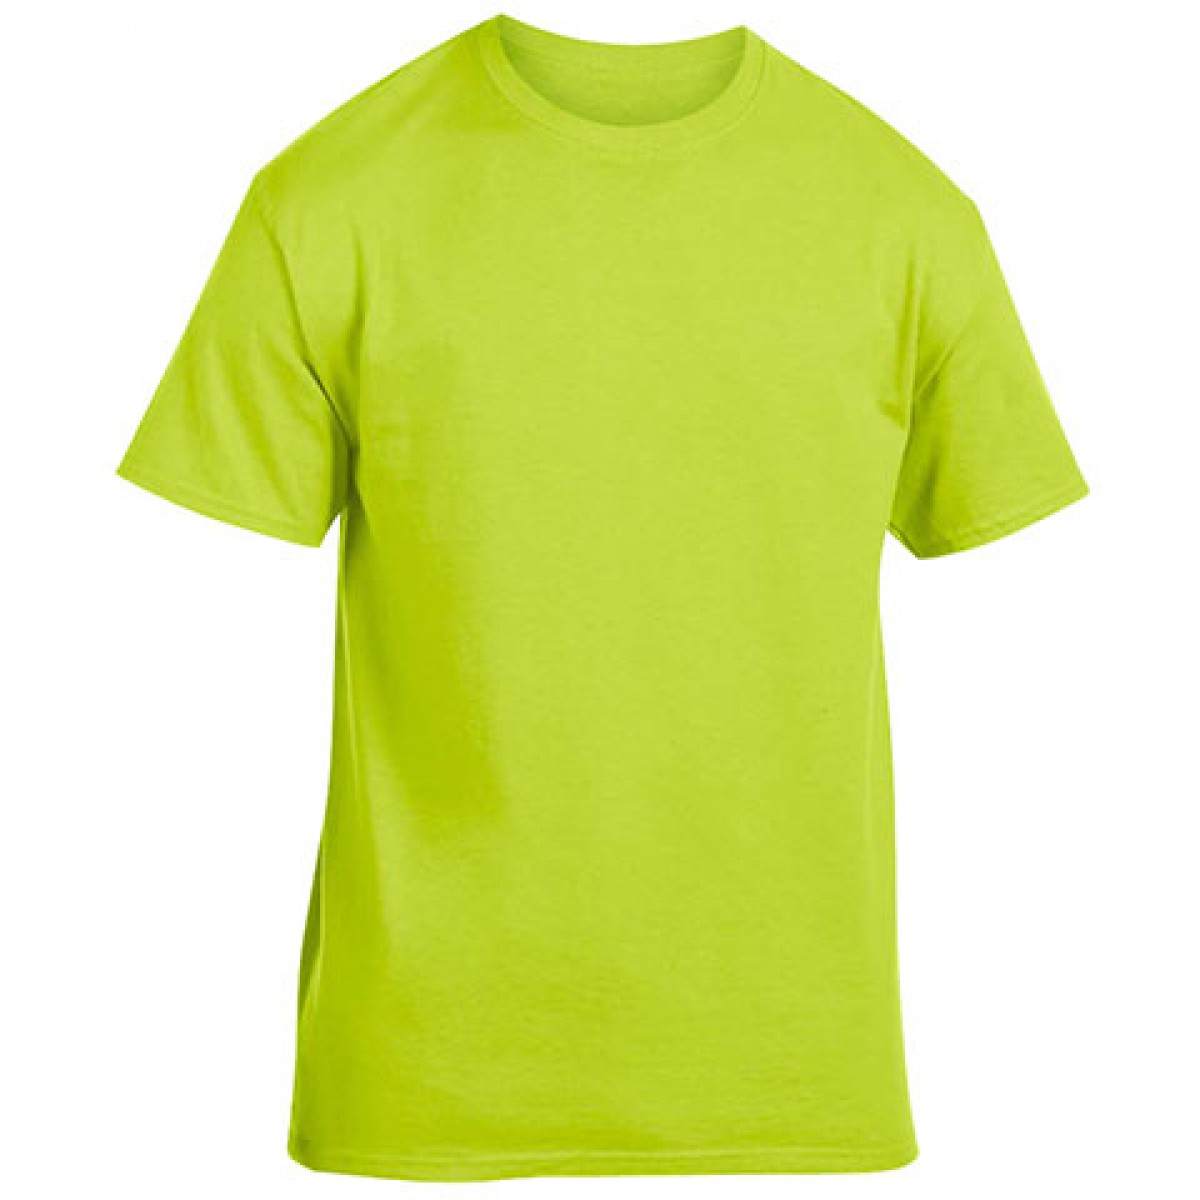 Cotton Short Sleeve T-Shirt-Safety Green-M